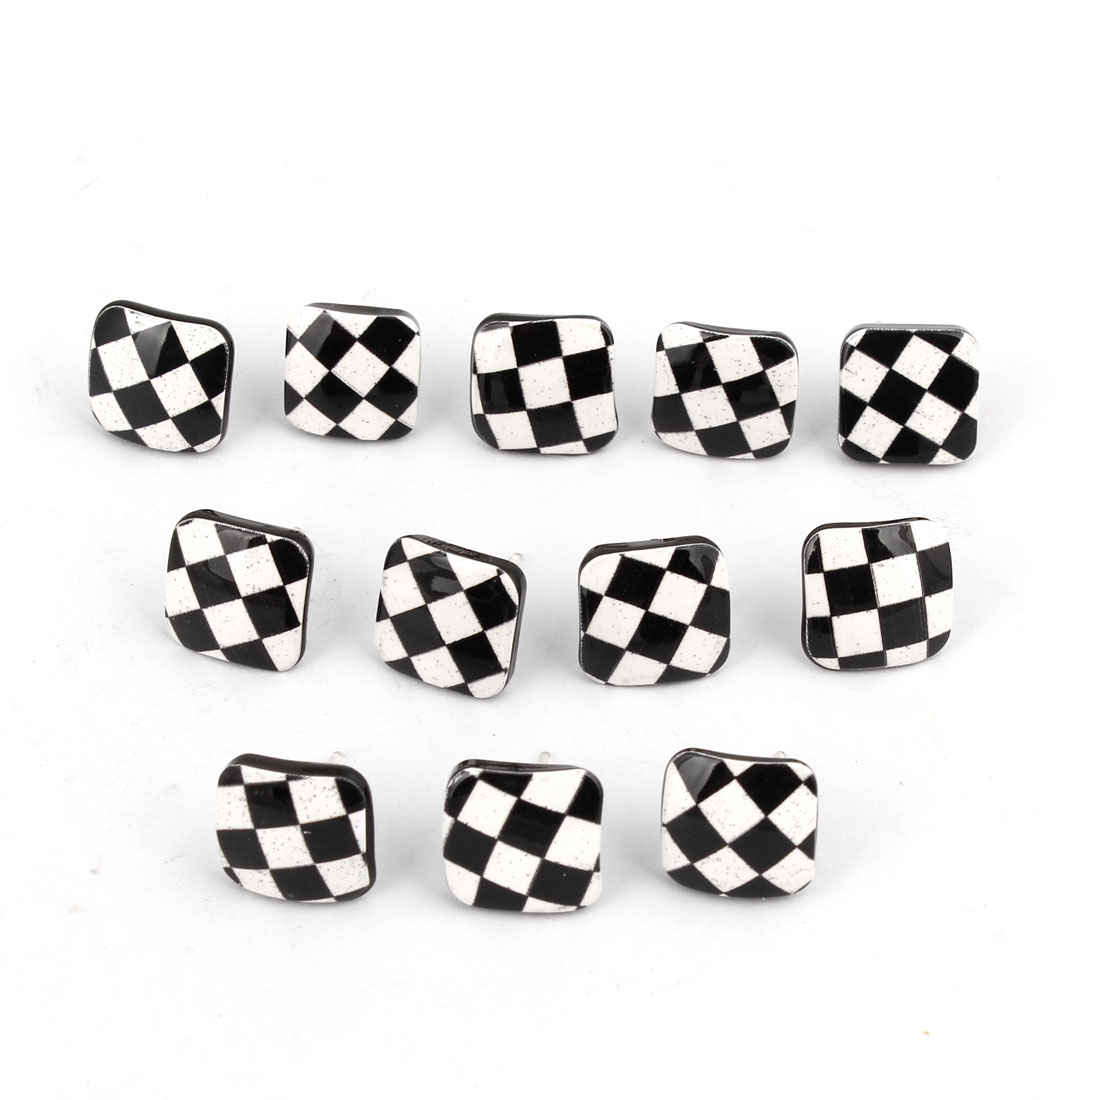 Ear Decor Square Shaped Plaids Pattern Stud Earrings Black White 6Pairs